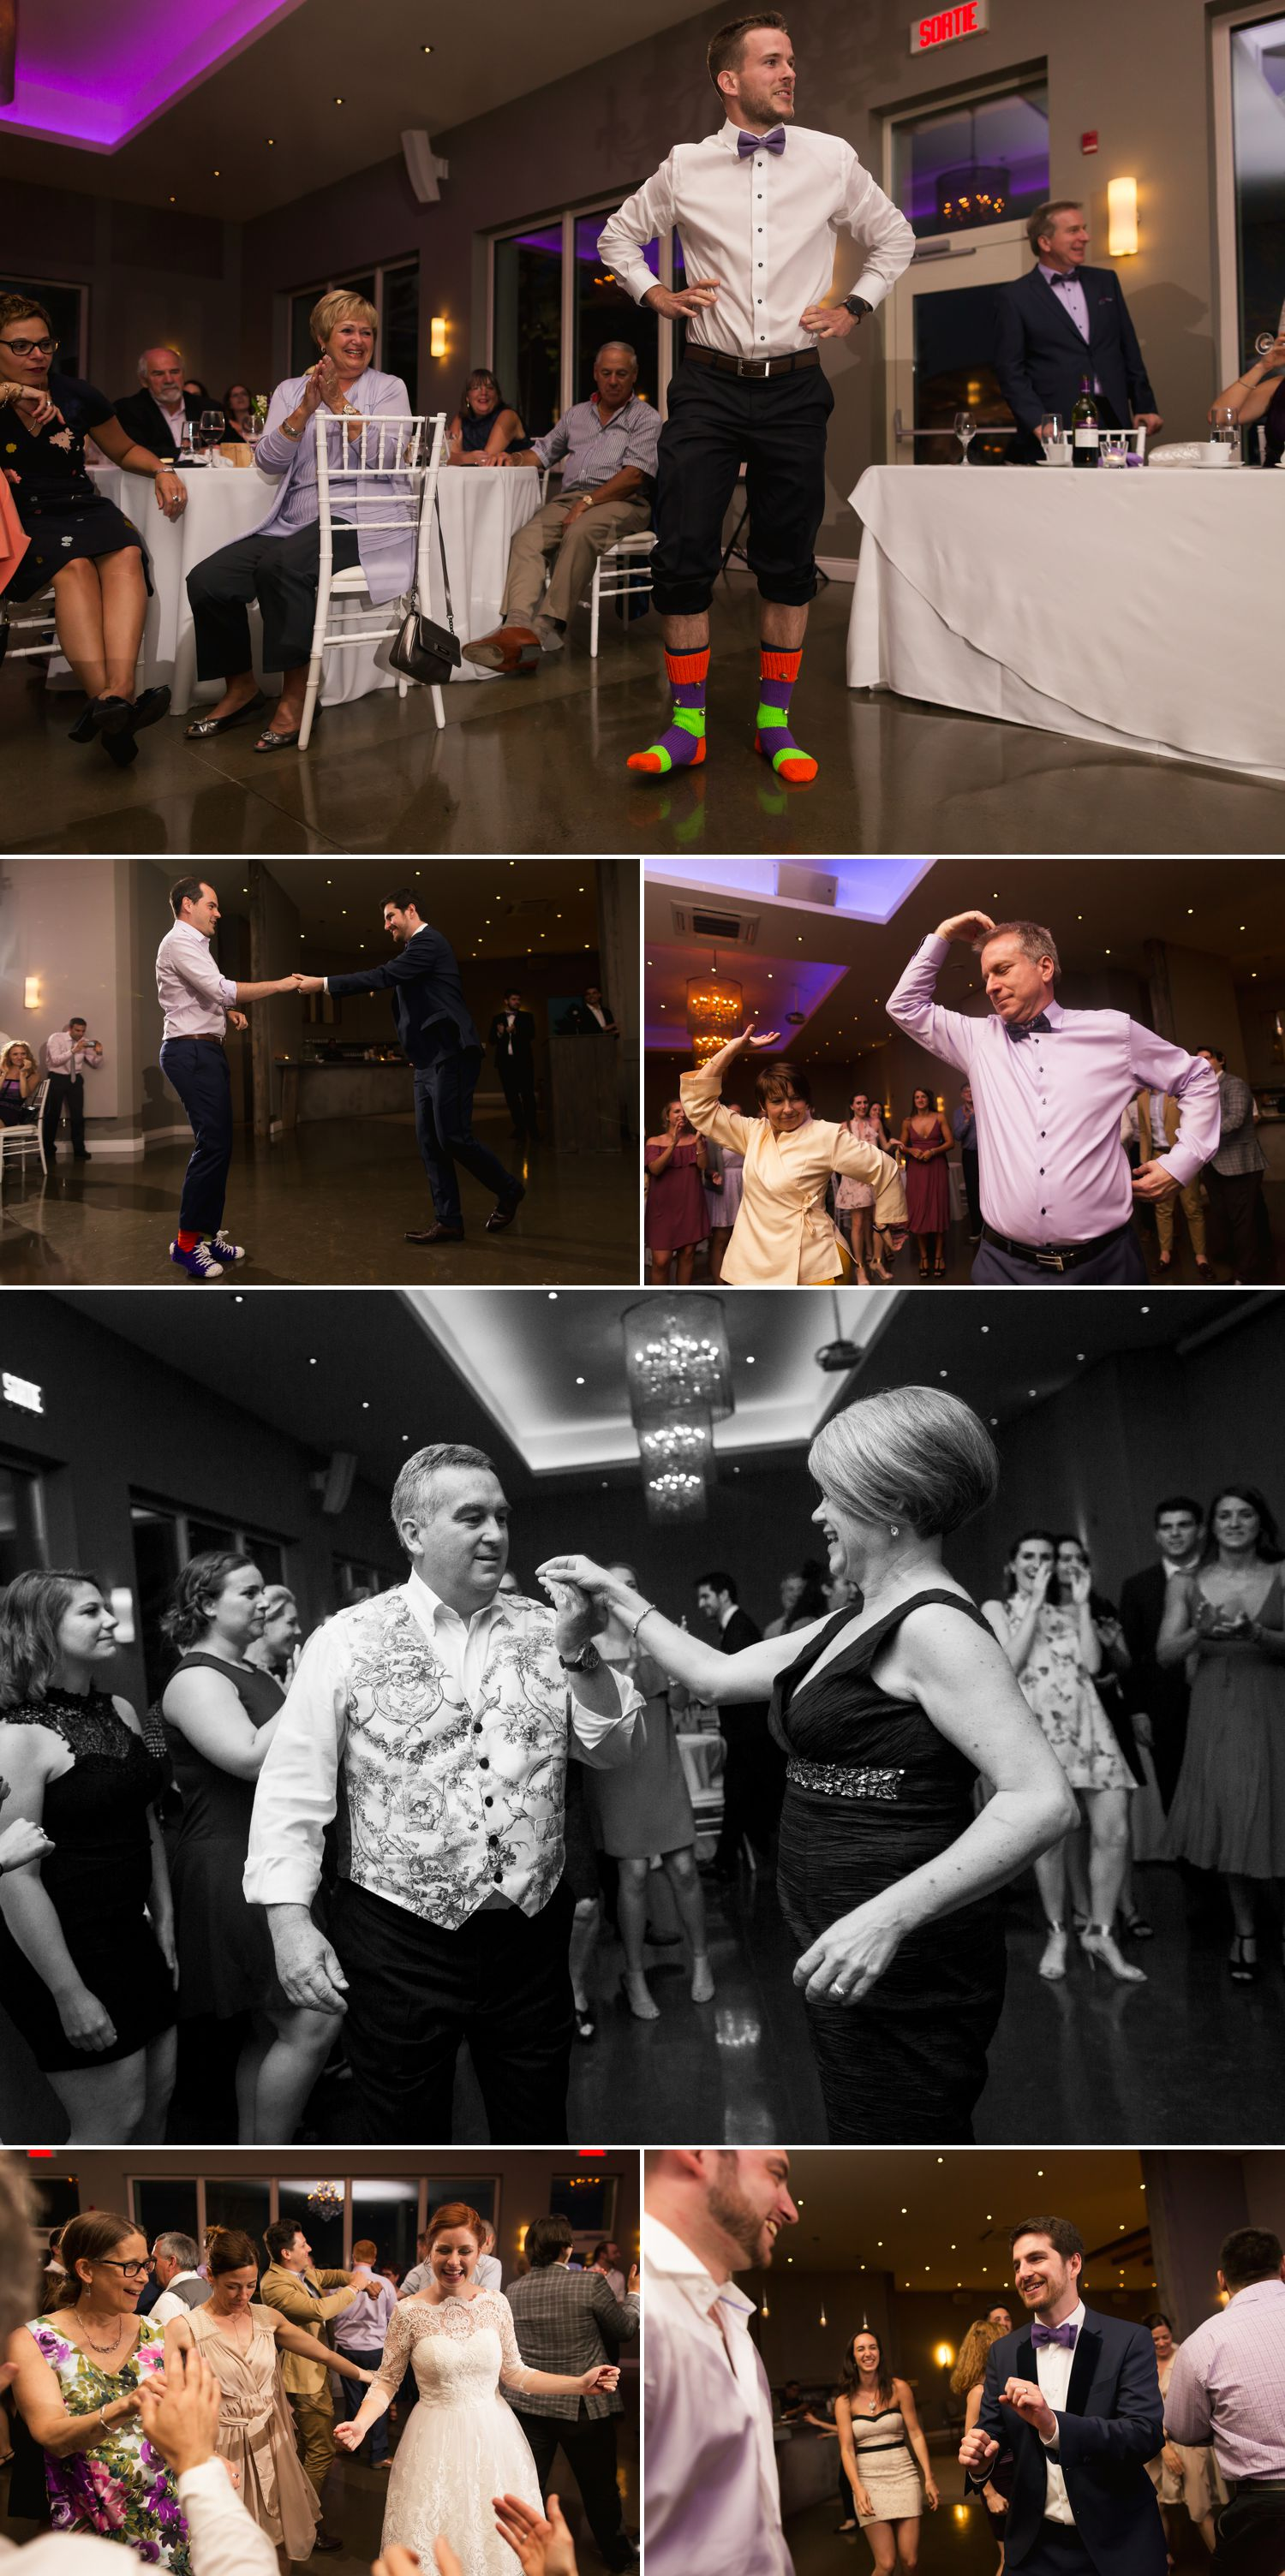 Guests dancing with the bride and groom during their wedding reception at Le Belvedere